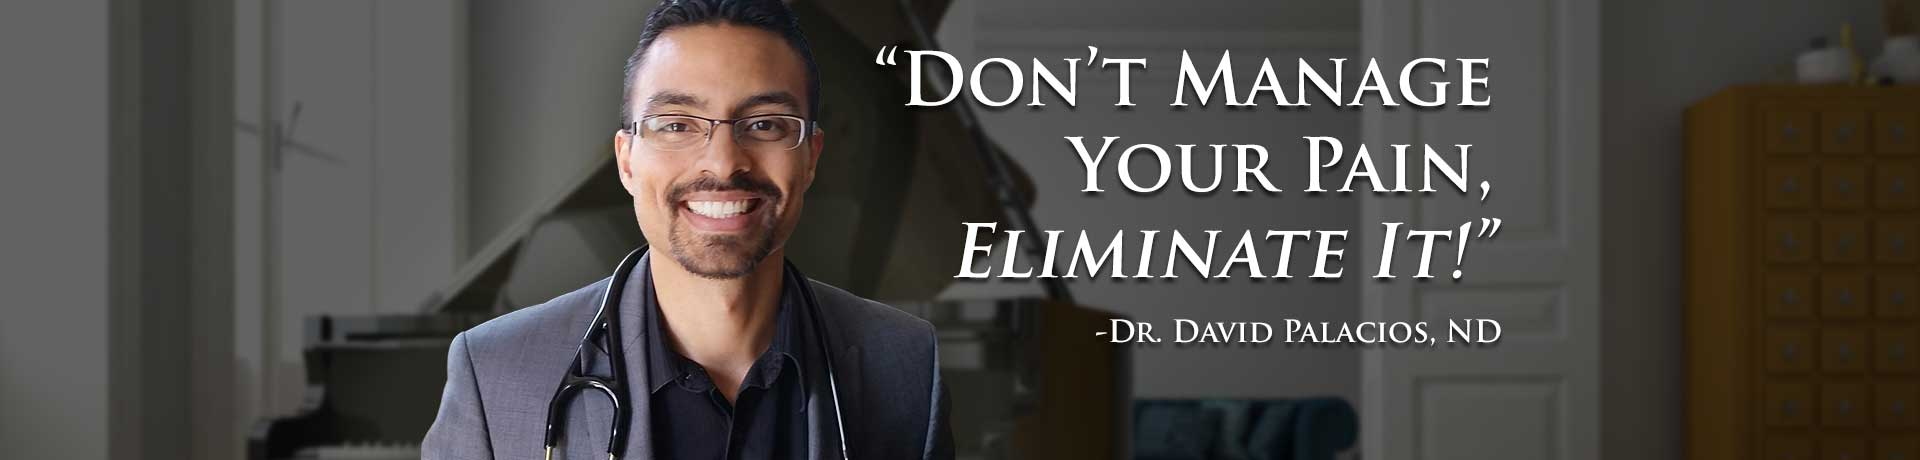 Dr. David Palacios, Naturopathic Doctor In Portland, Oregon